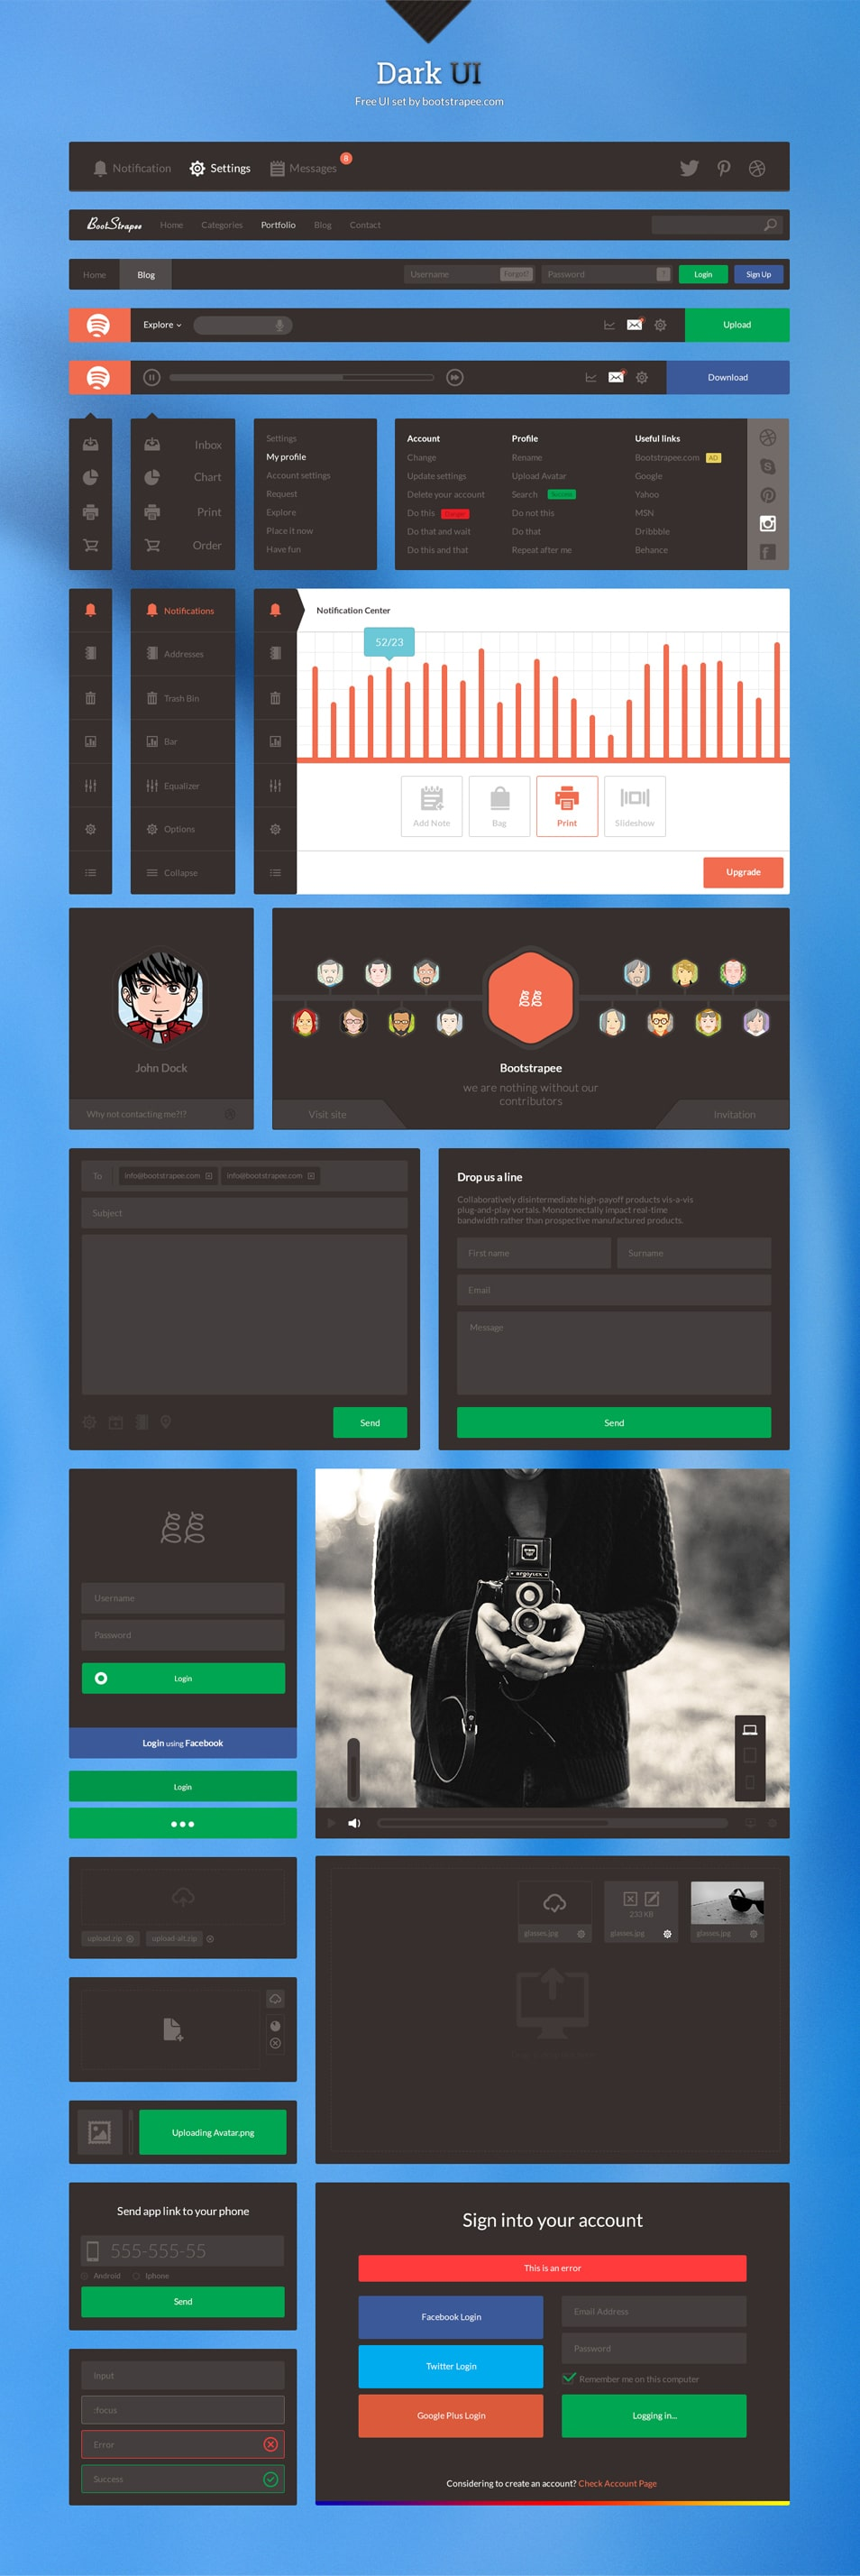 Free Dark UI Set